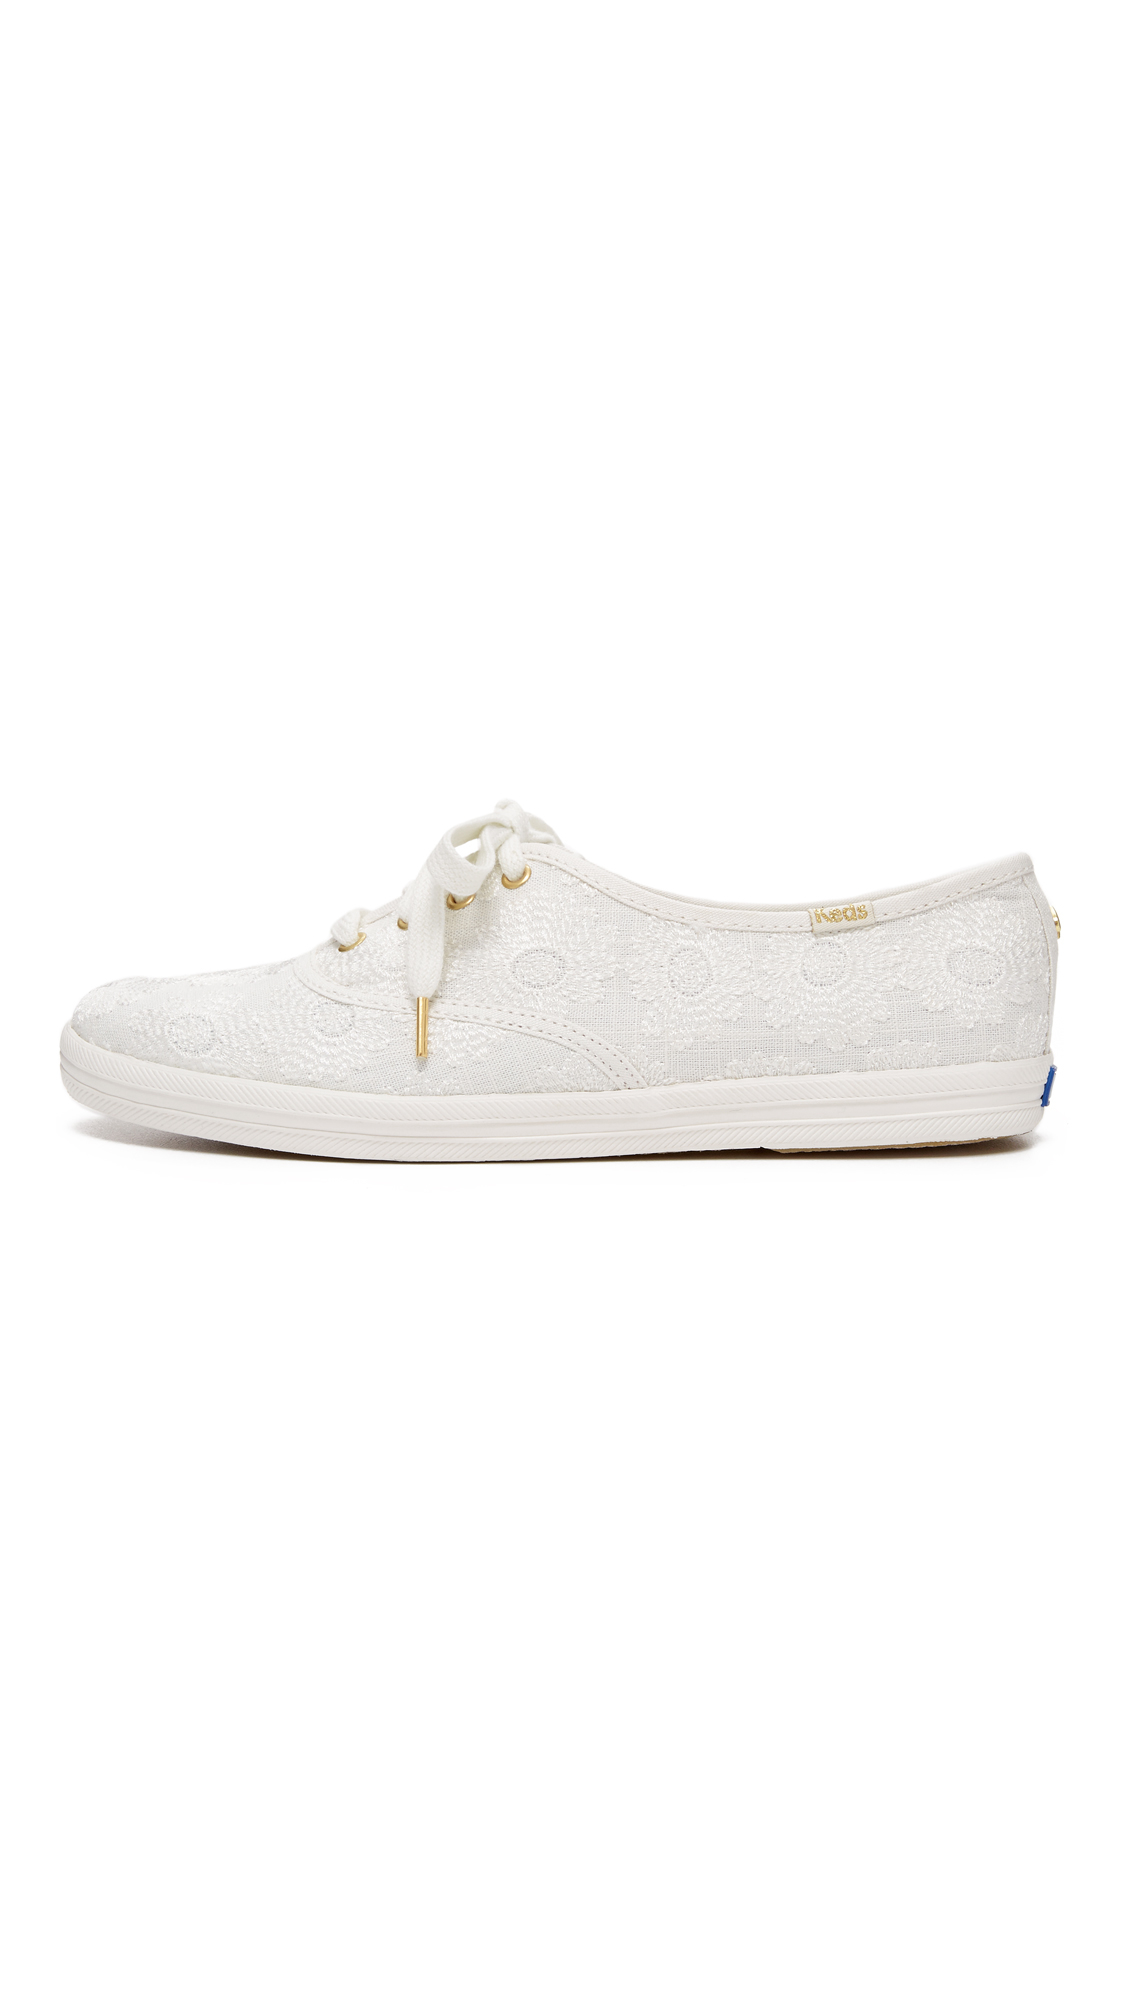 Lyst - Kate Spade Keds For Kate Spade Kick Embroidered Sneakers in White bfad84337f